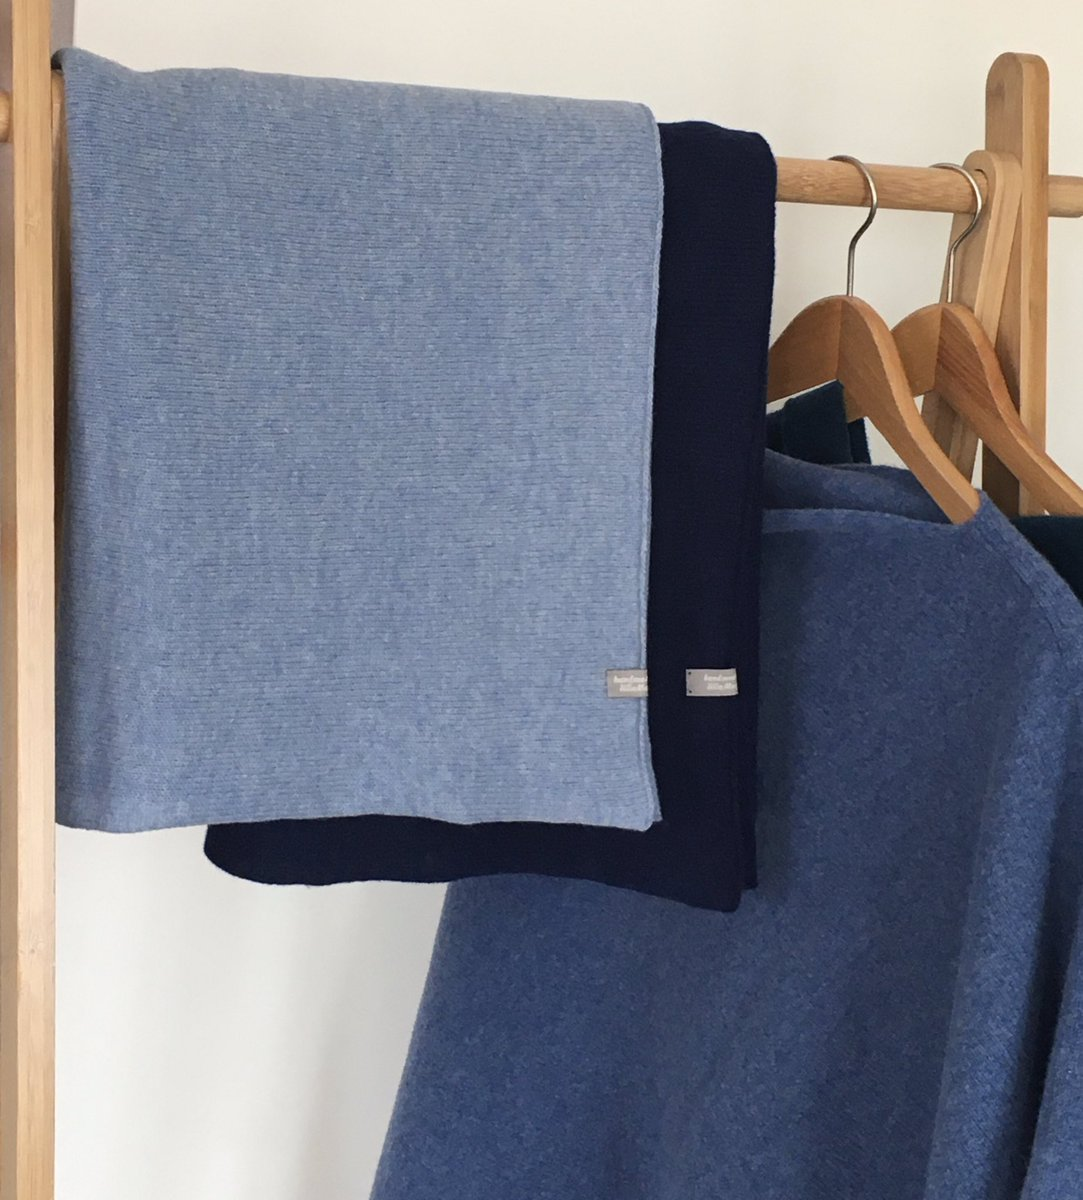 Weather changed and orders are coming in these knitted Blue Ponchos in British spun beautifully soft merino lambswool are ready for posting happy 😃 ideal summer cover up all body types! #earlybiz #etsyshop #handmade #SmallBiz #folksyshop #womaninbiz #sustainablefashion #wool